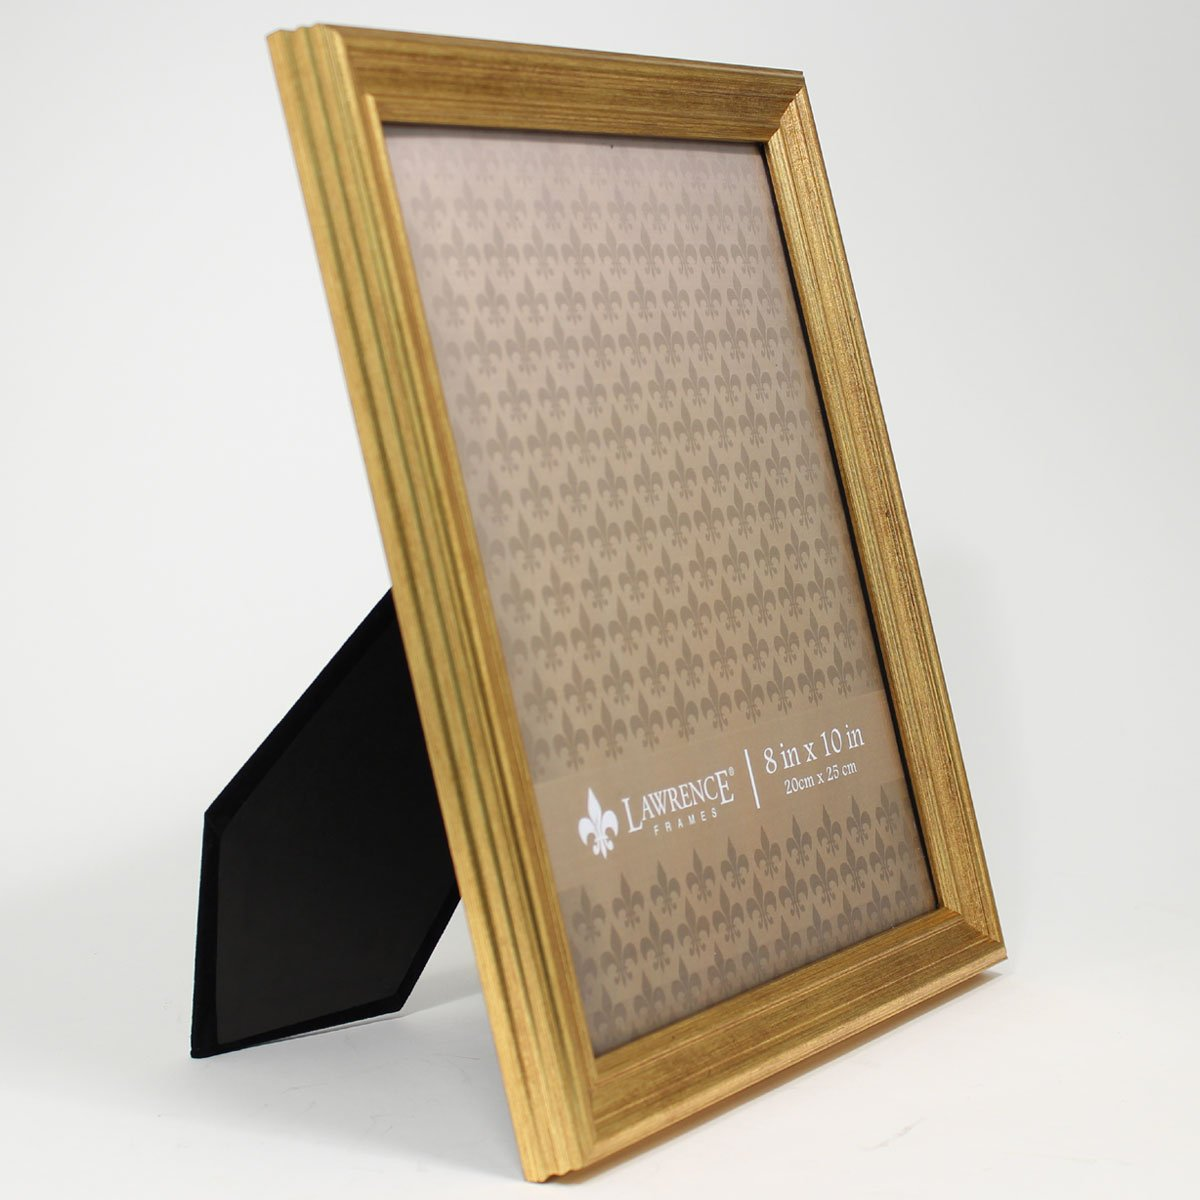 Lawrence Frames Sutter Gold 8x10 Picture Frame, 8 by 10-Inch, by Lawrence Frames (Image #3)